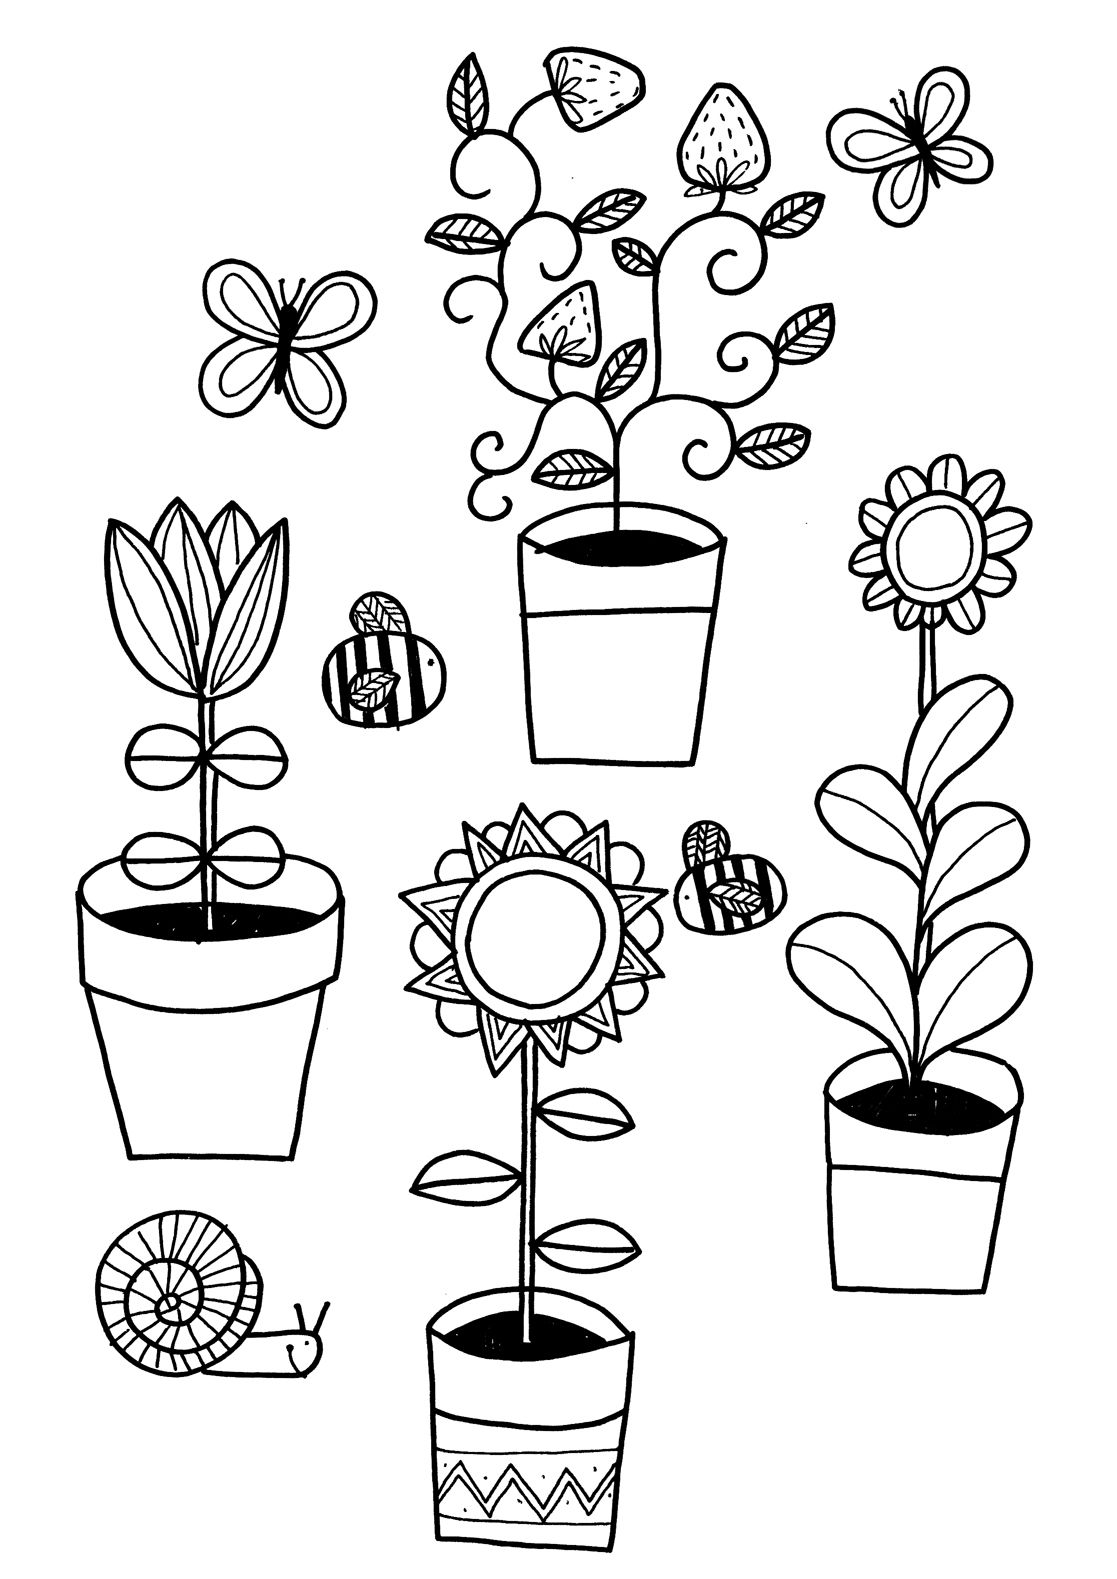 colouring sheets flowers and plants plant coloring pages coloring pages to download and print colouring sheets flowers plants and